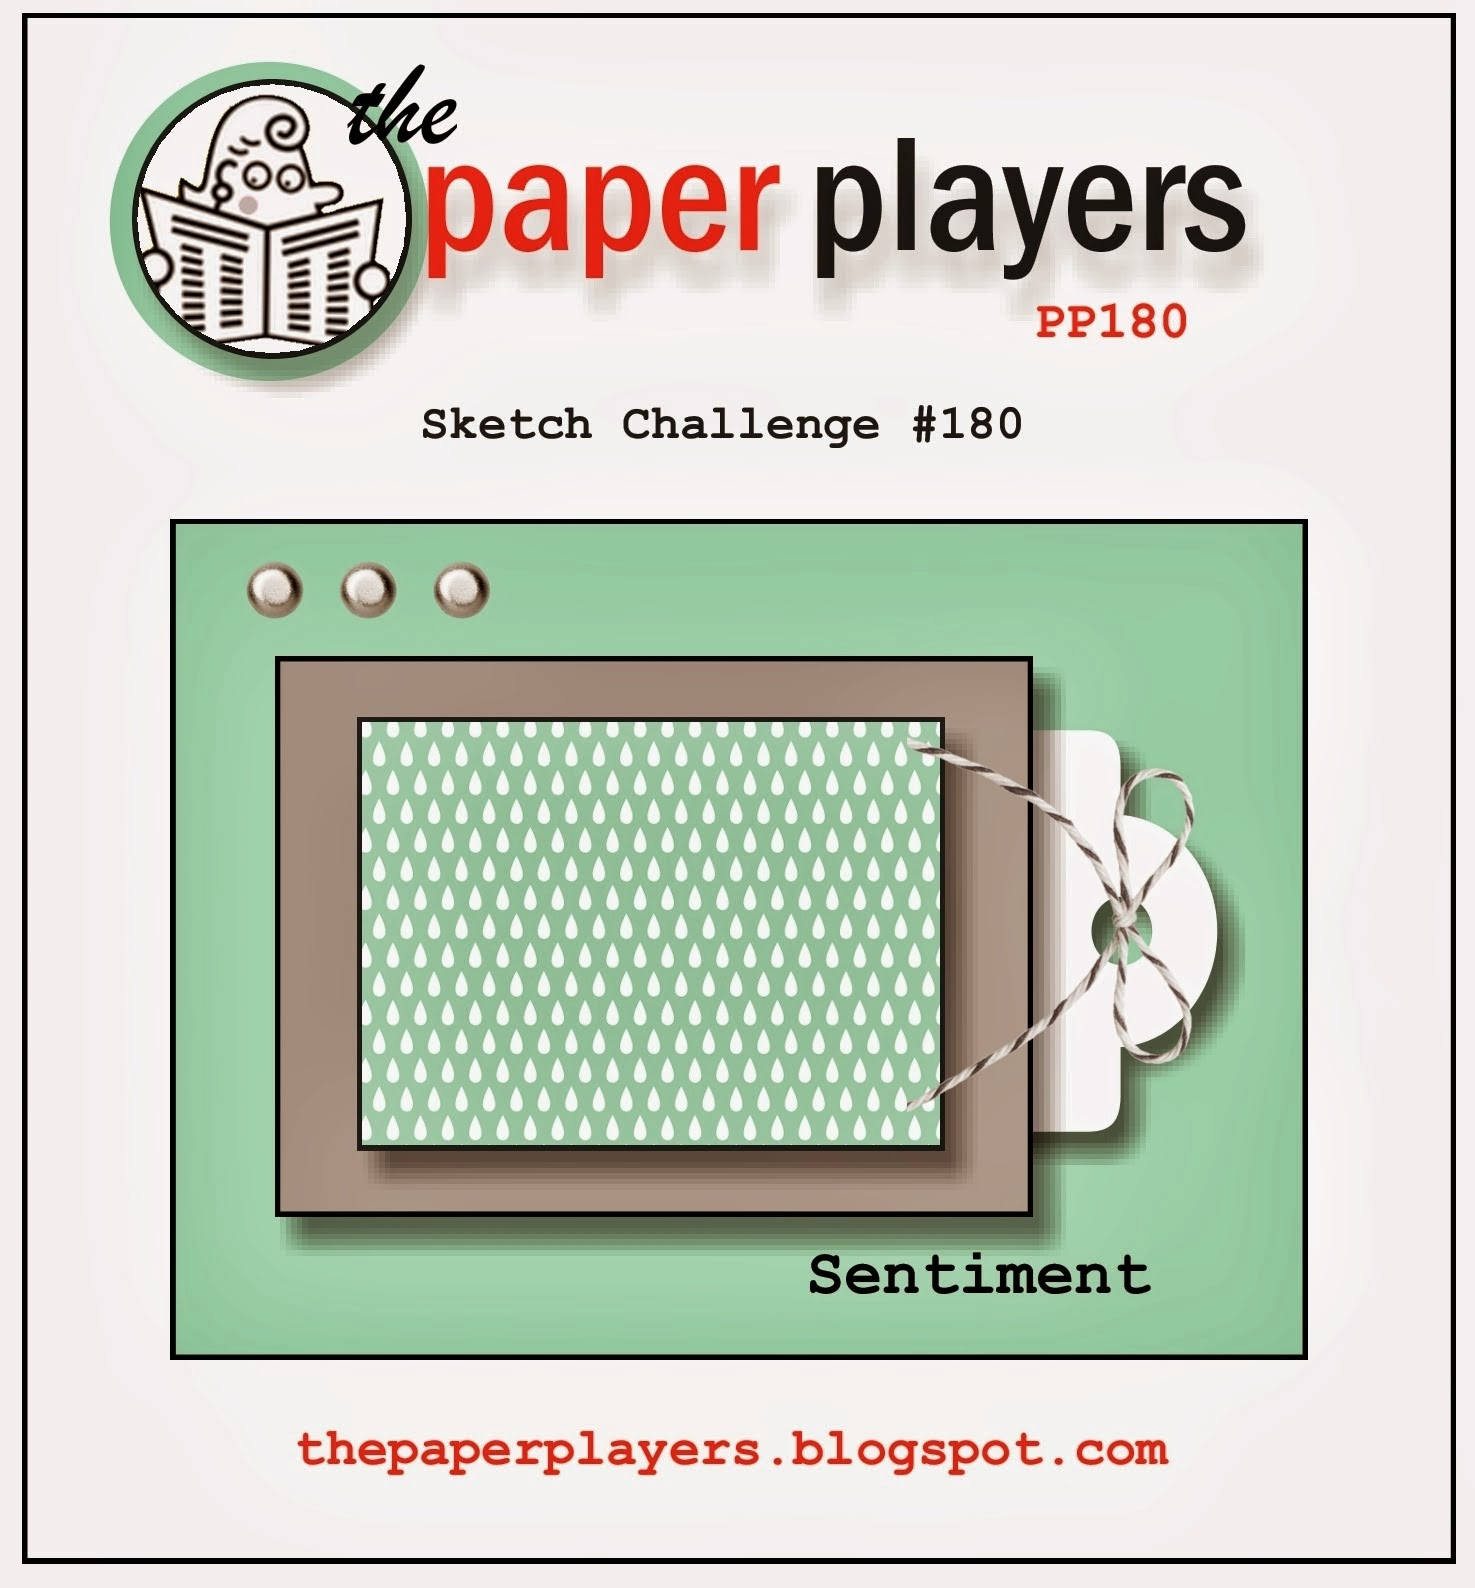 http://thepaperplayers.blogspot.ca/2014/01/the-paper-players-challenge-180-sketch.html